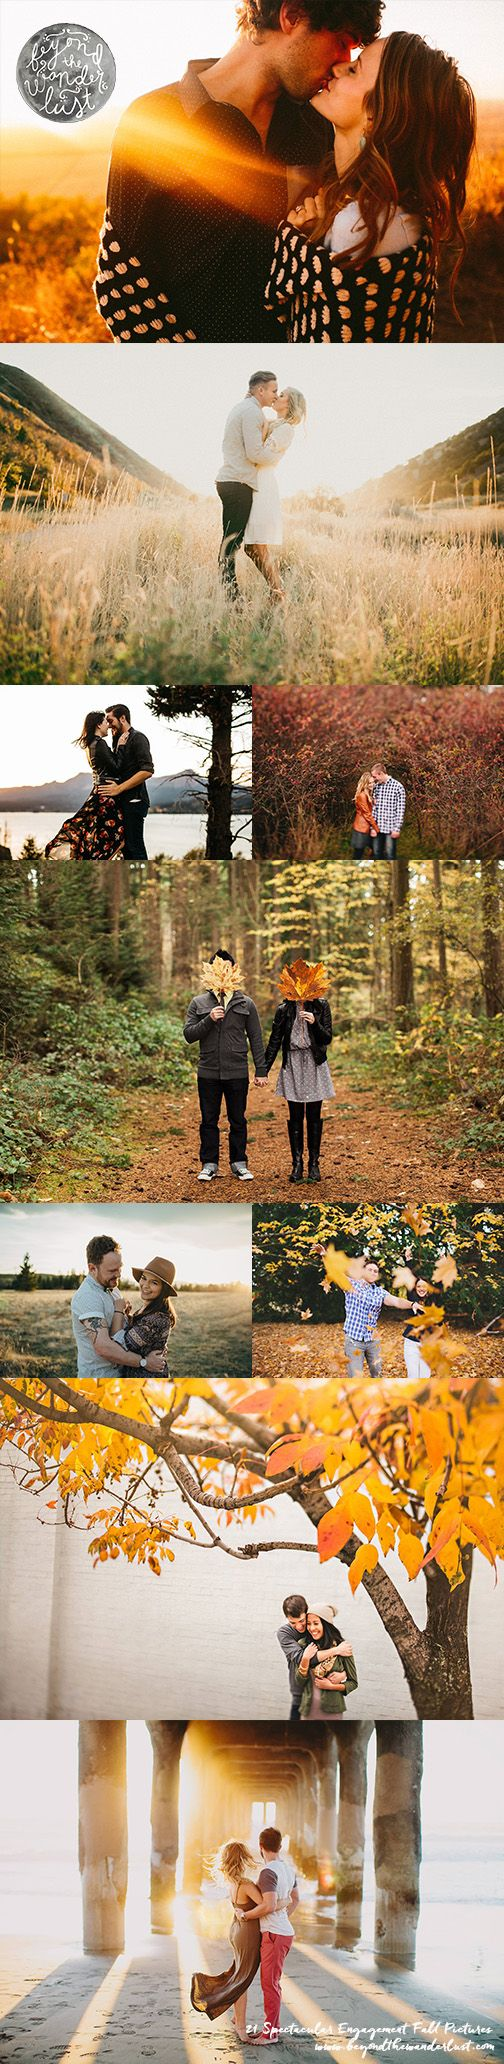 Fall engagement pictures, what to wear for engagement pictures